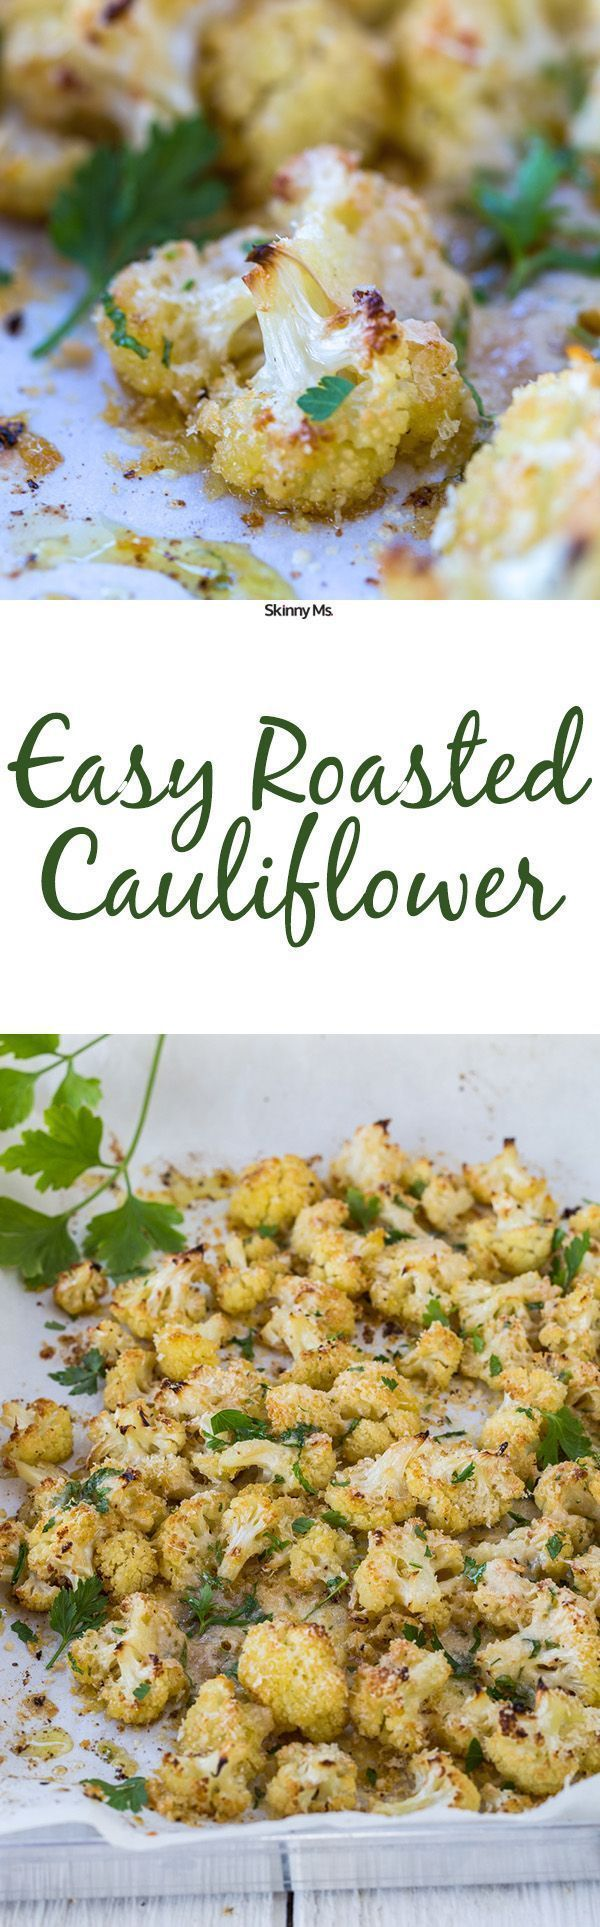 Try this recipe for Easy Roasted Cauliflower as a Thanksgiving side dish! It's a crowd favorite :)